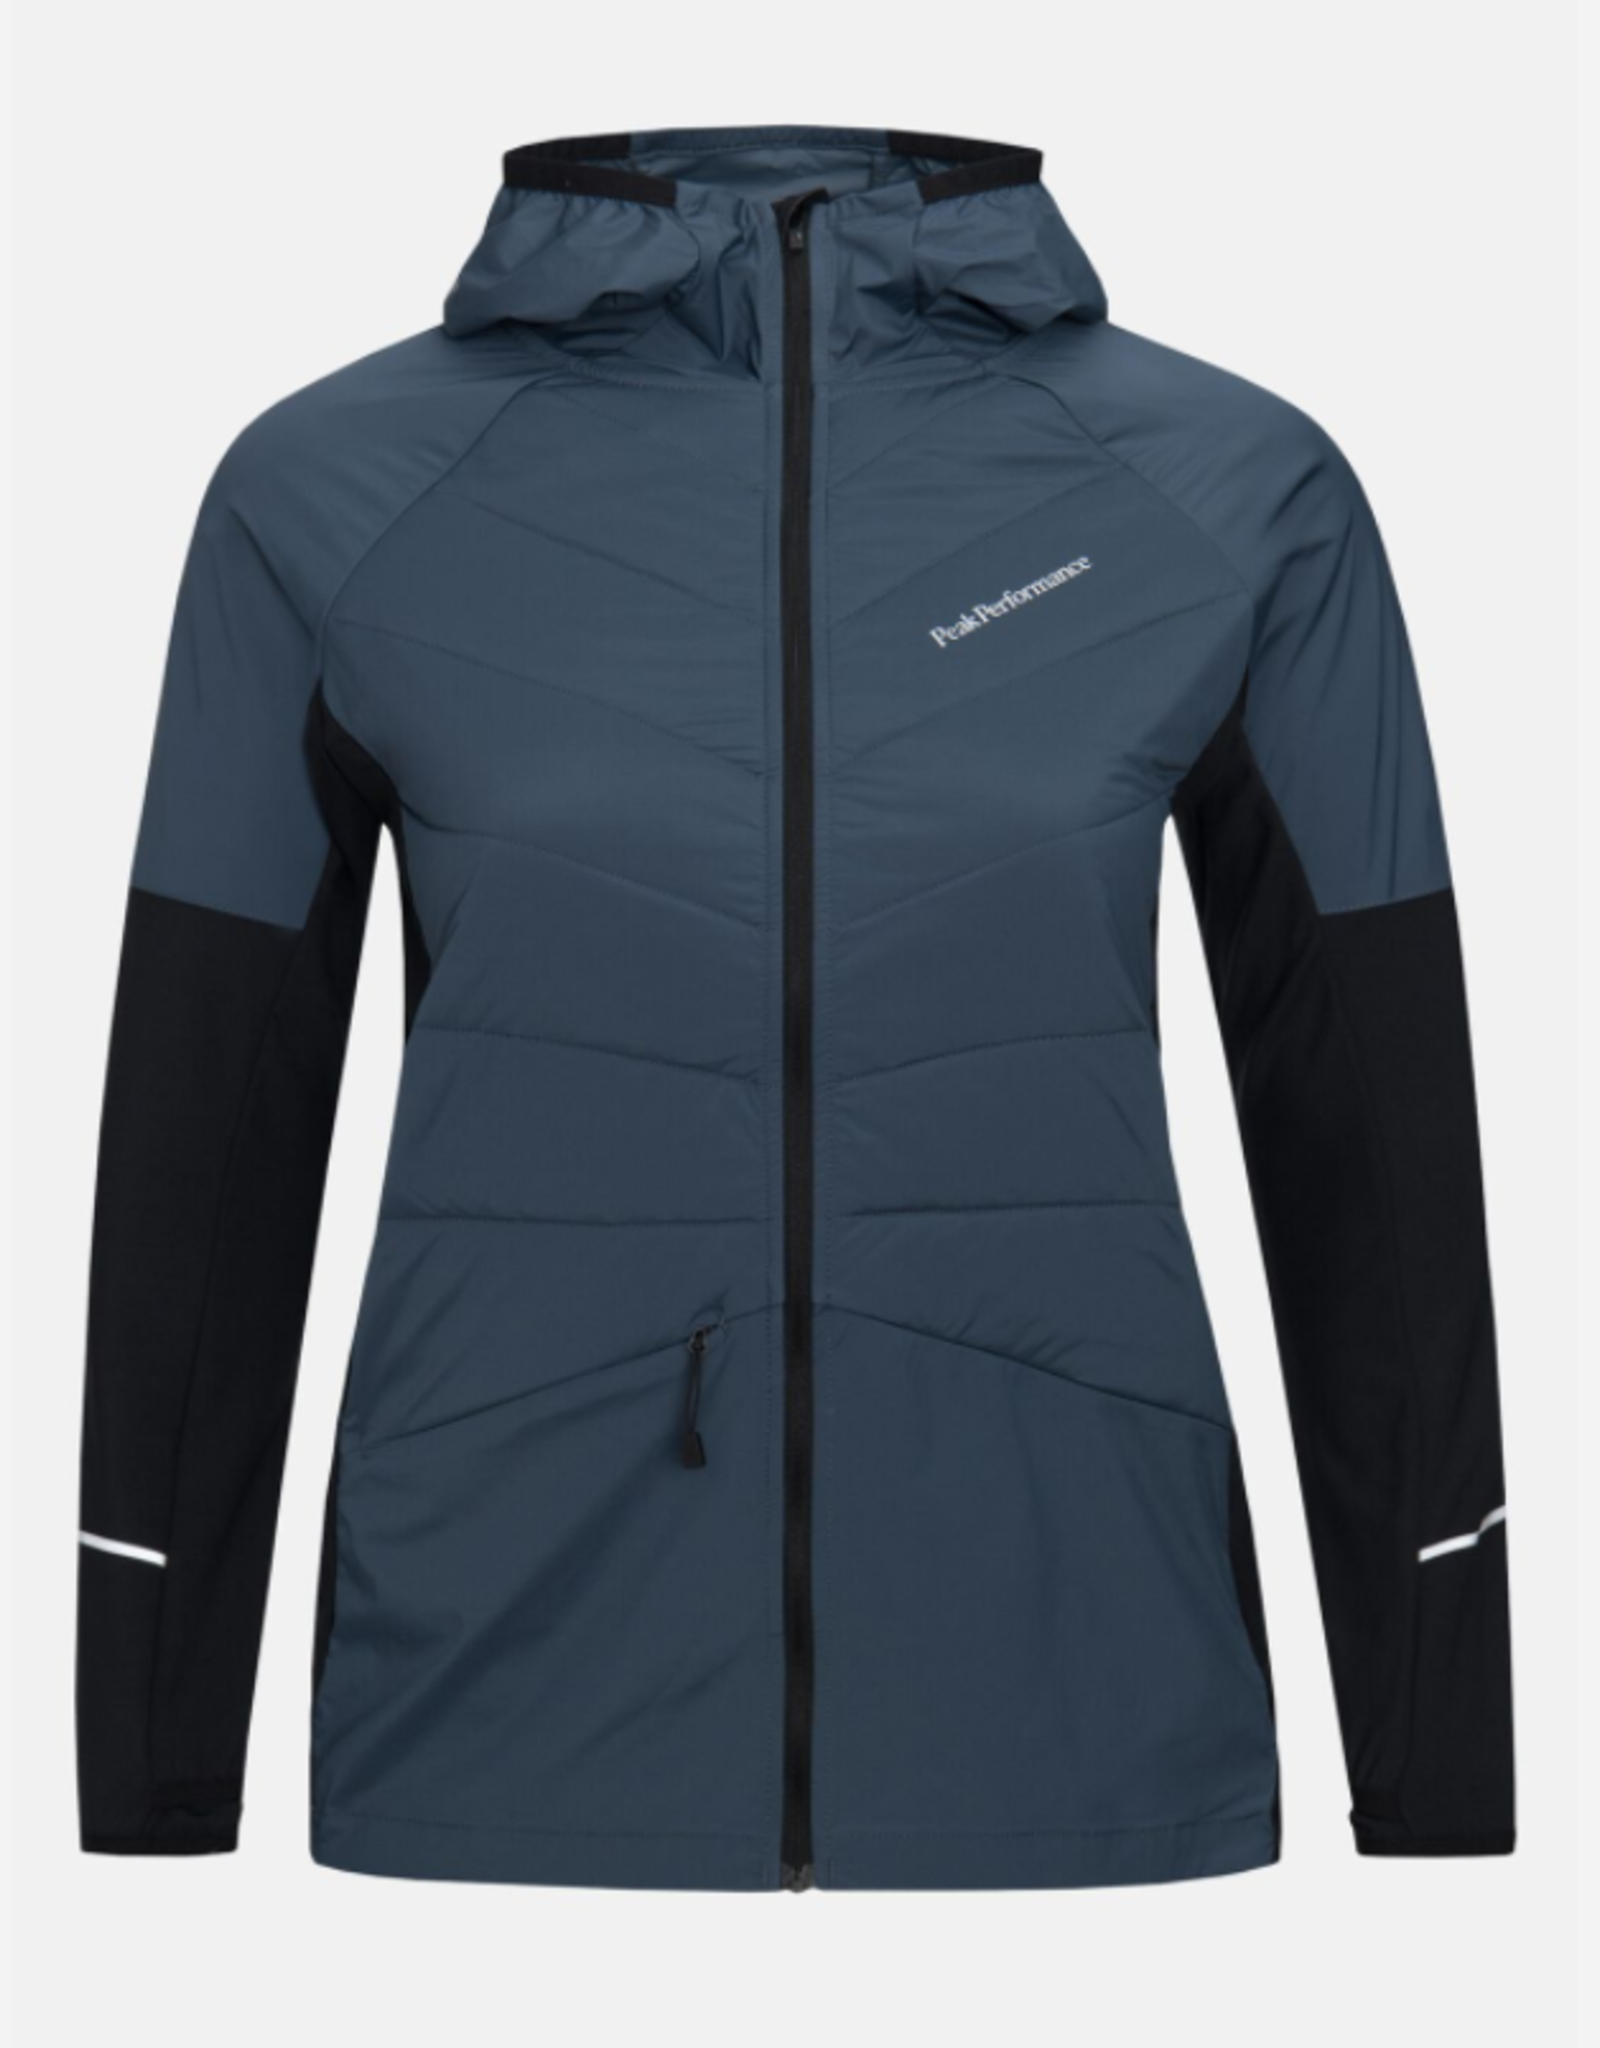 Peak Performance Alum jacket dames (ref G65580008)